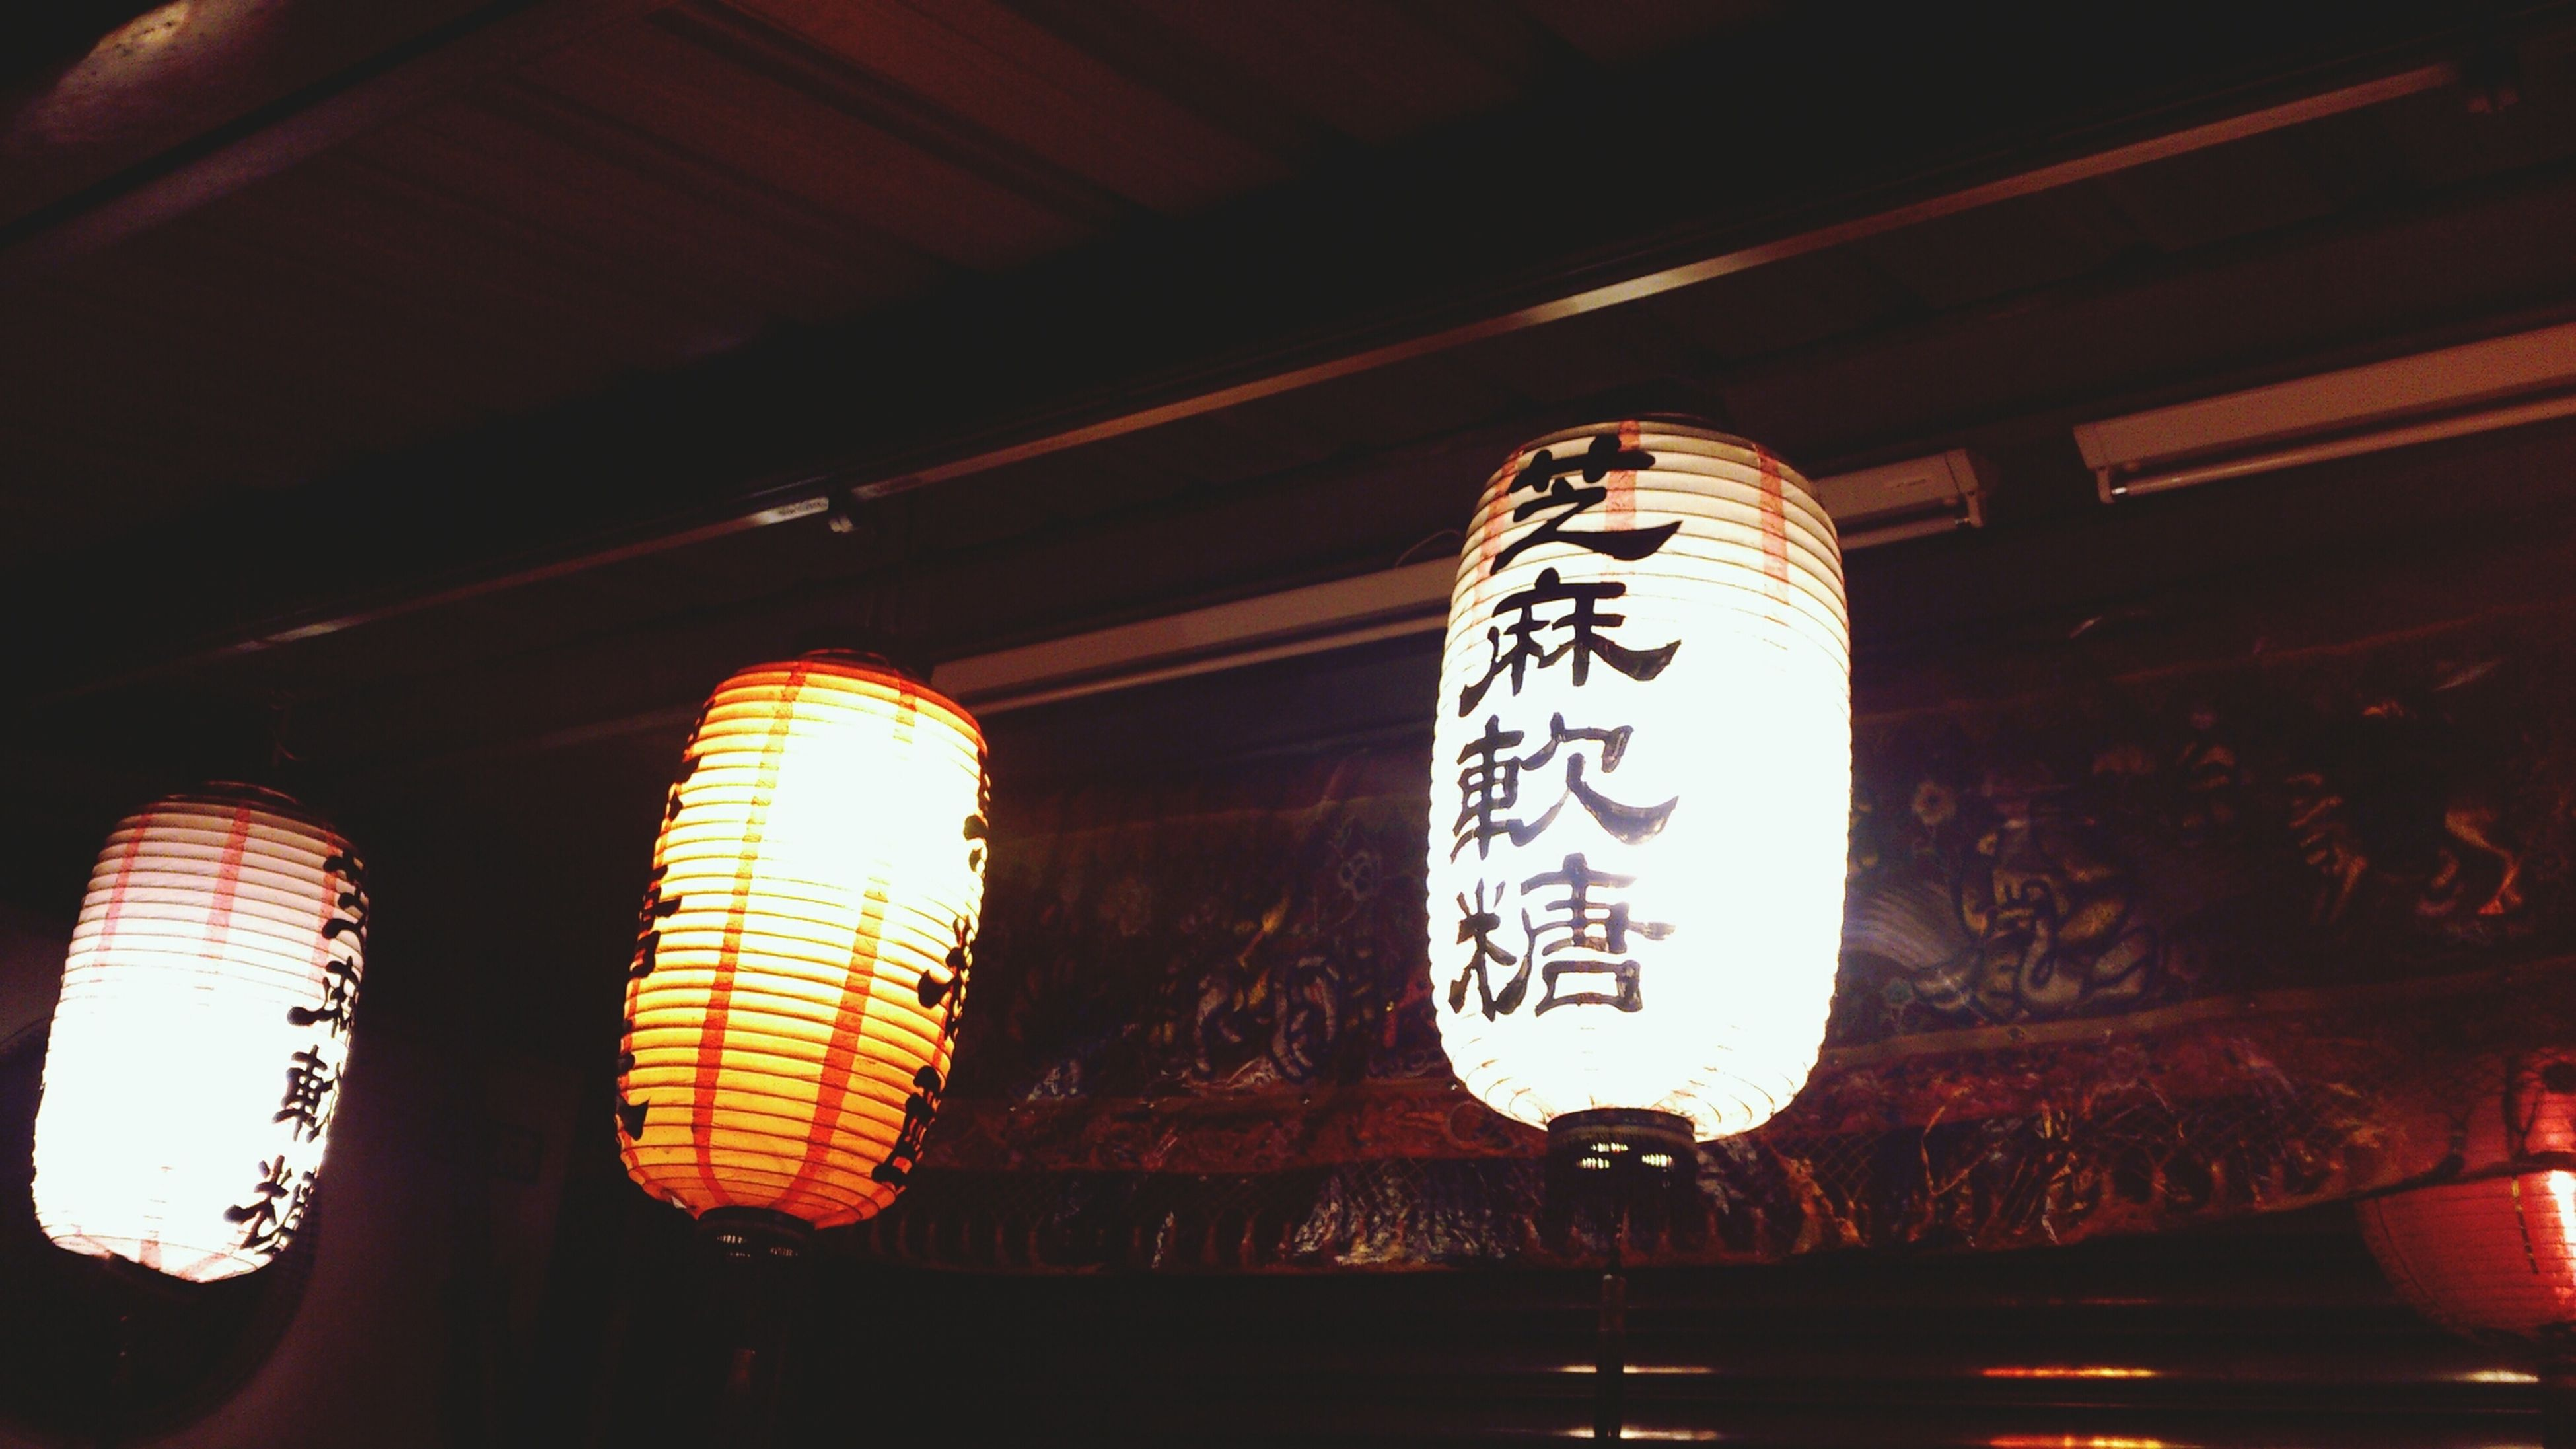 indoors, illuminated, text, lighting equipment, western script, communication, low angle view, red, close-up, night, no people, hanging, light - natural phenomenon, lantern, wall - building feature, glowing, decoration, pattern, dark, home interior